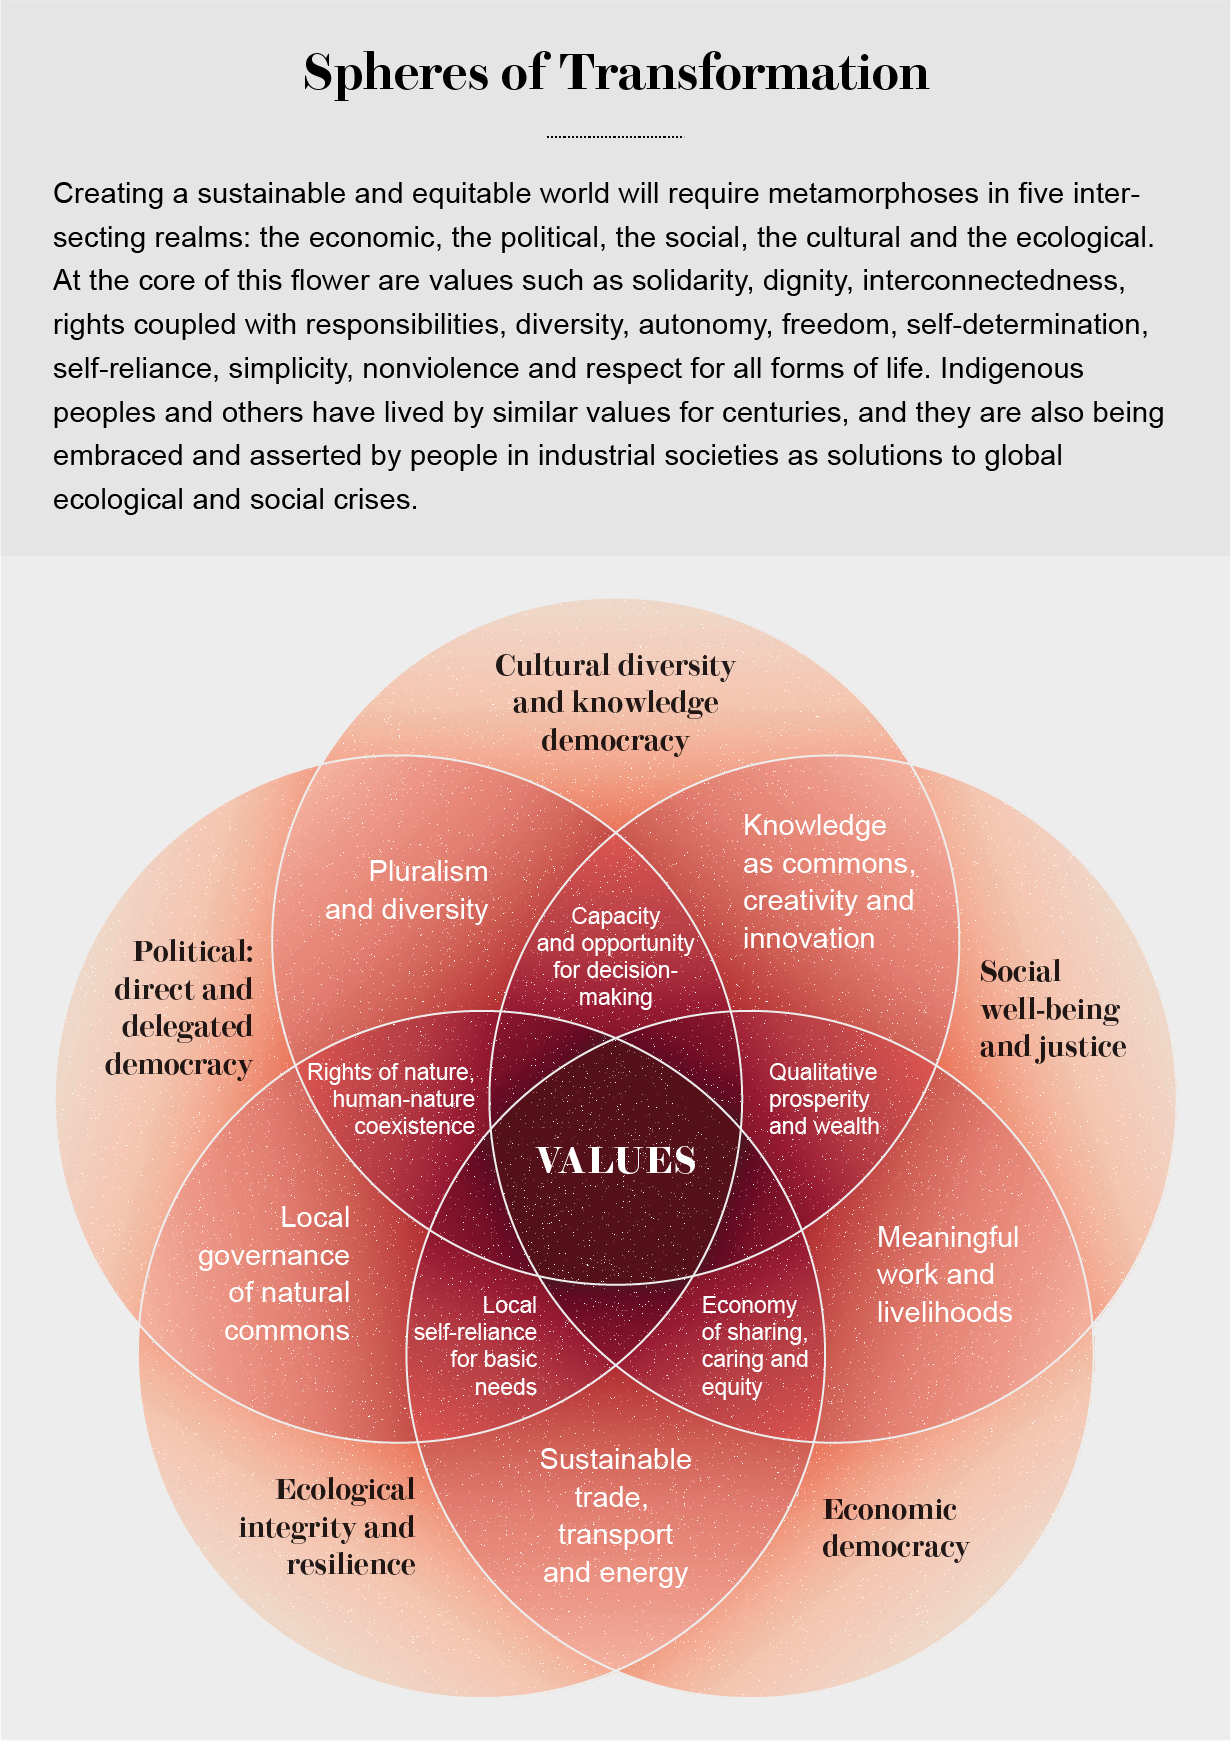 Five circles form a flower-shaped Venn diagram of intersecting realms: economic, political, social, cultural and ecological.